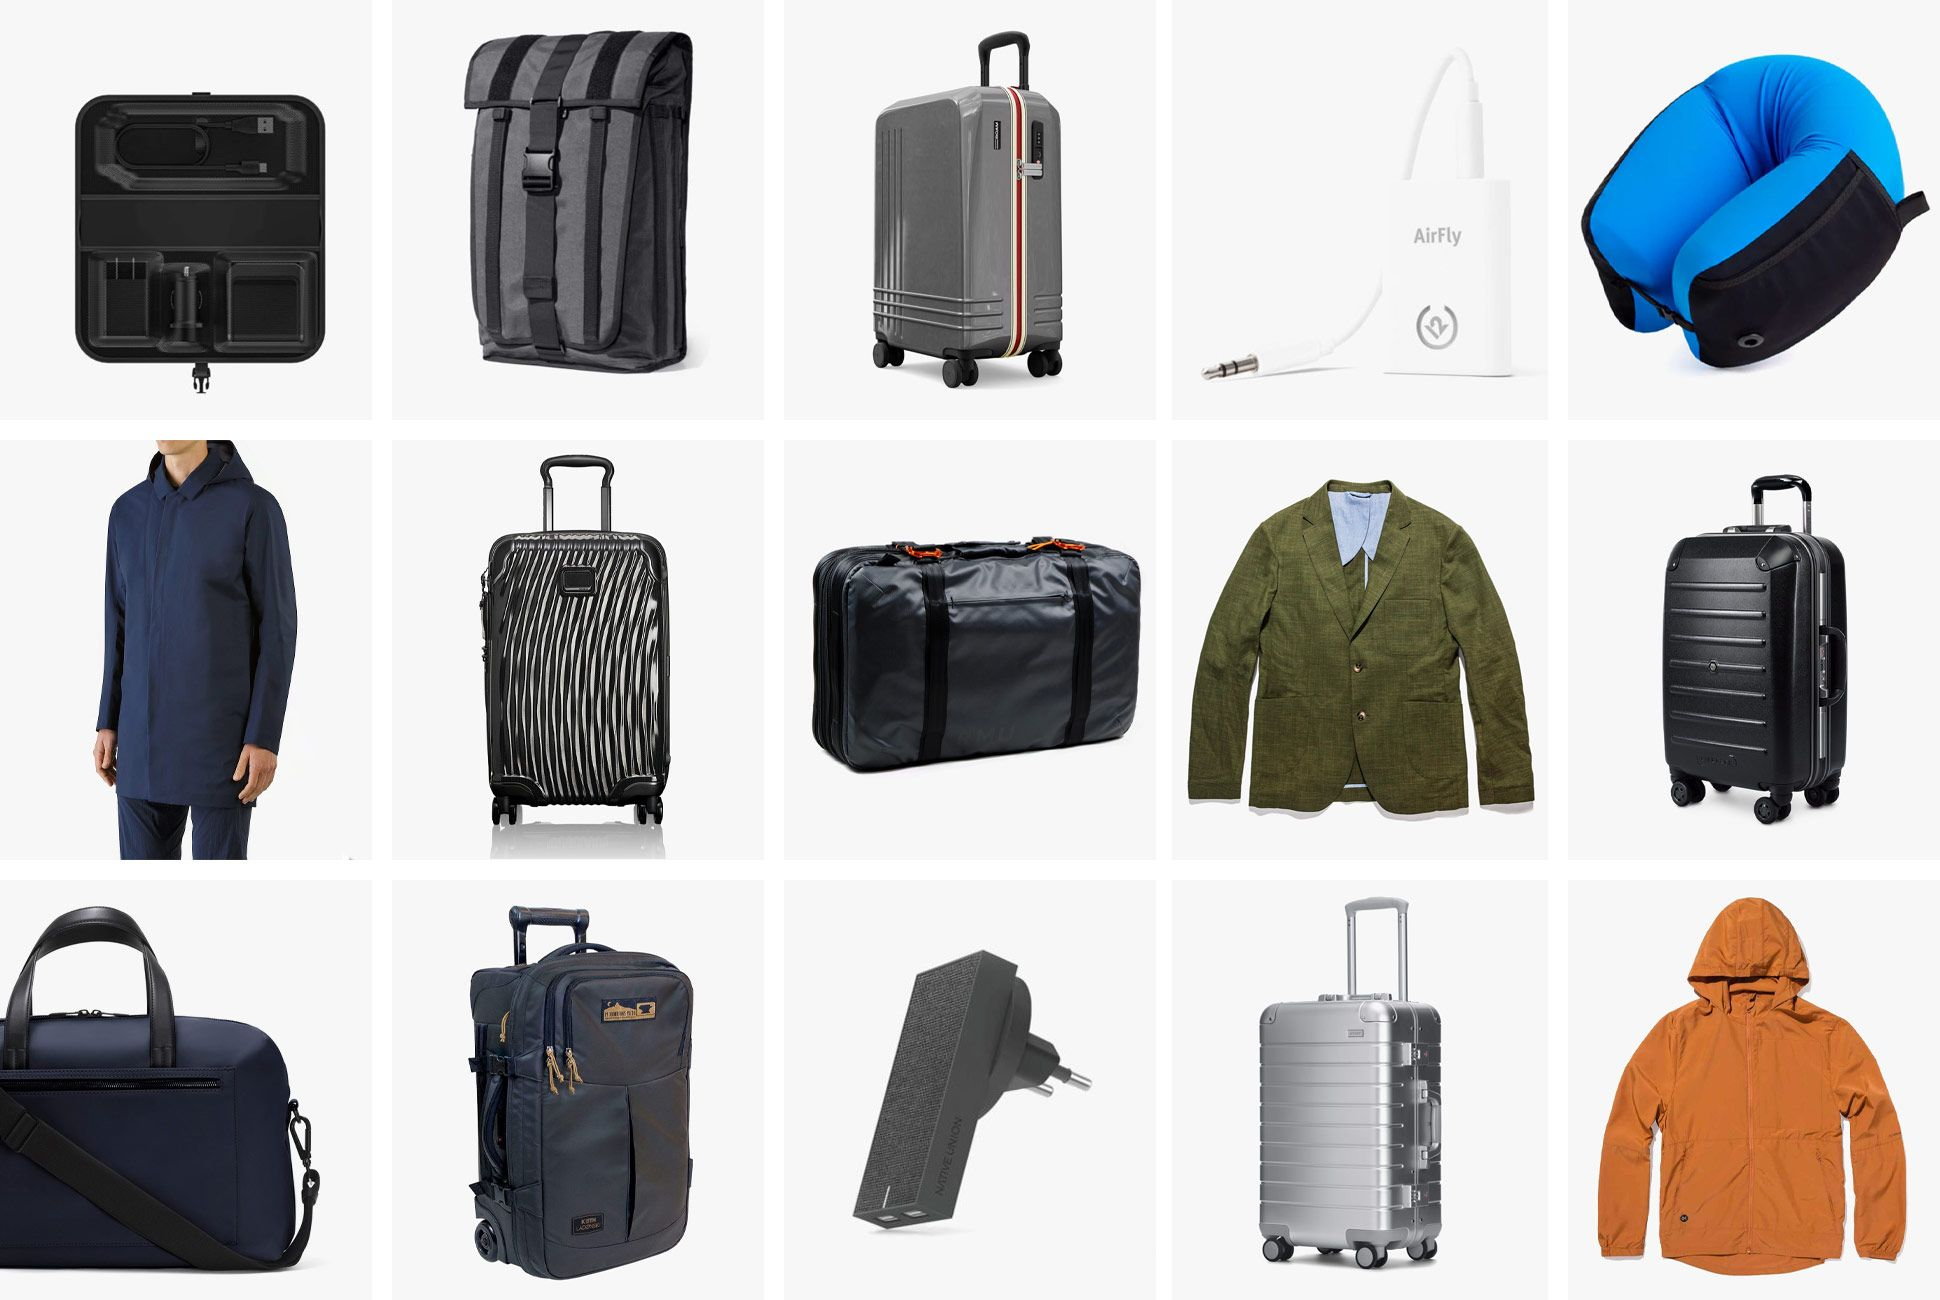 2018 Travel Gear The Top Travel Products Of 2018 Gear Patrol